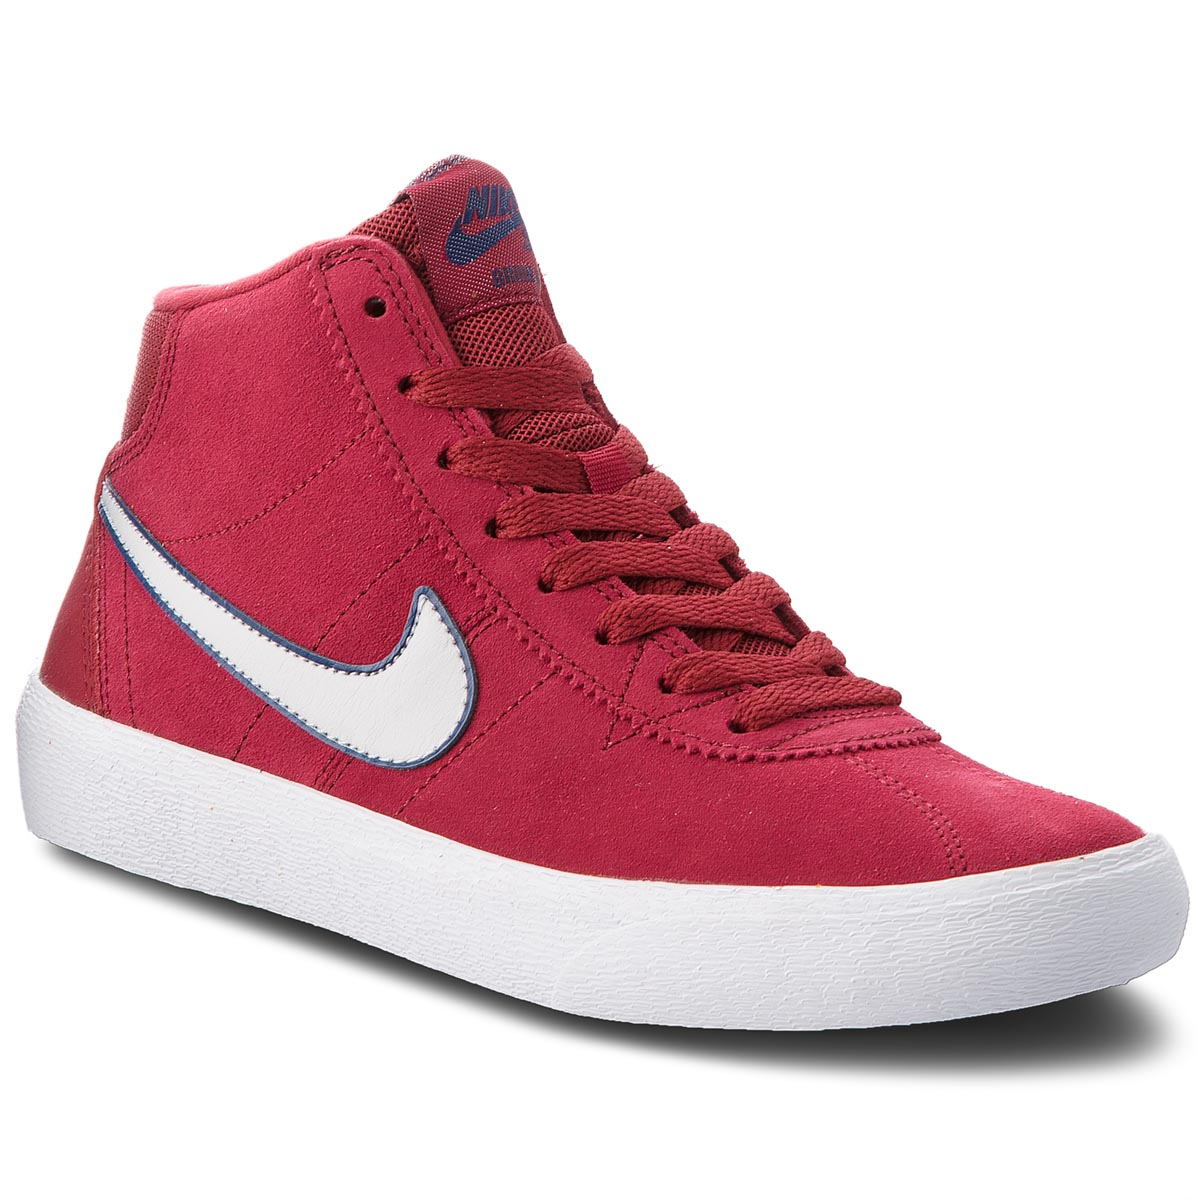 Pantofi NIKE - Sb Bruin Hi 923112 600 Red Crush/Vast Grey/White